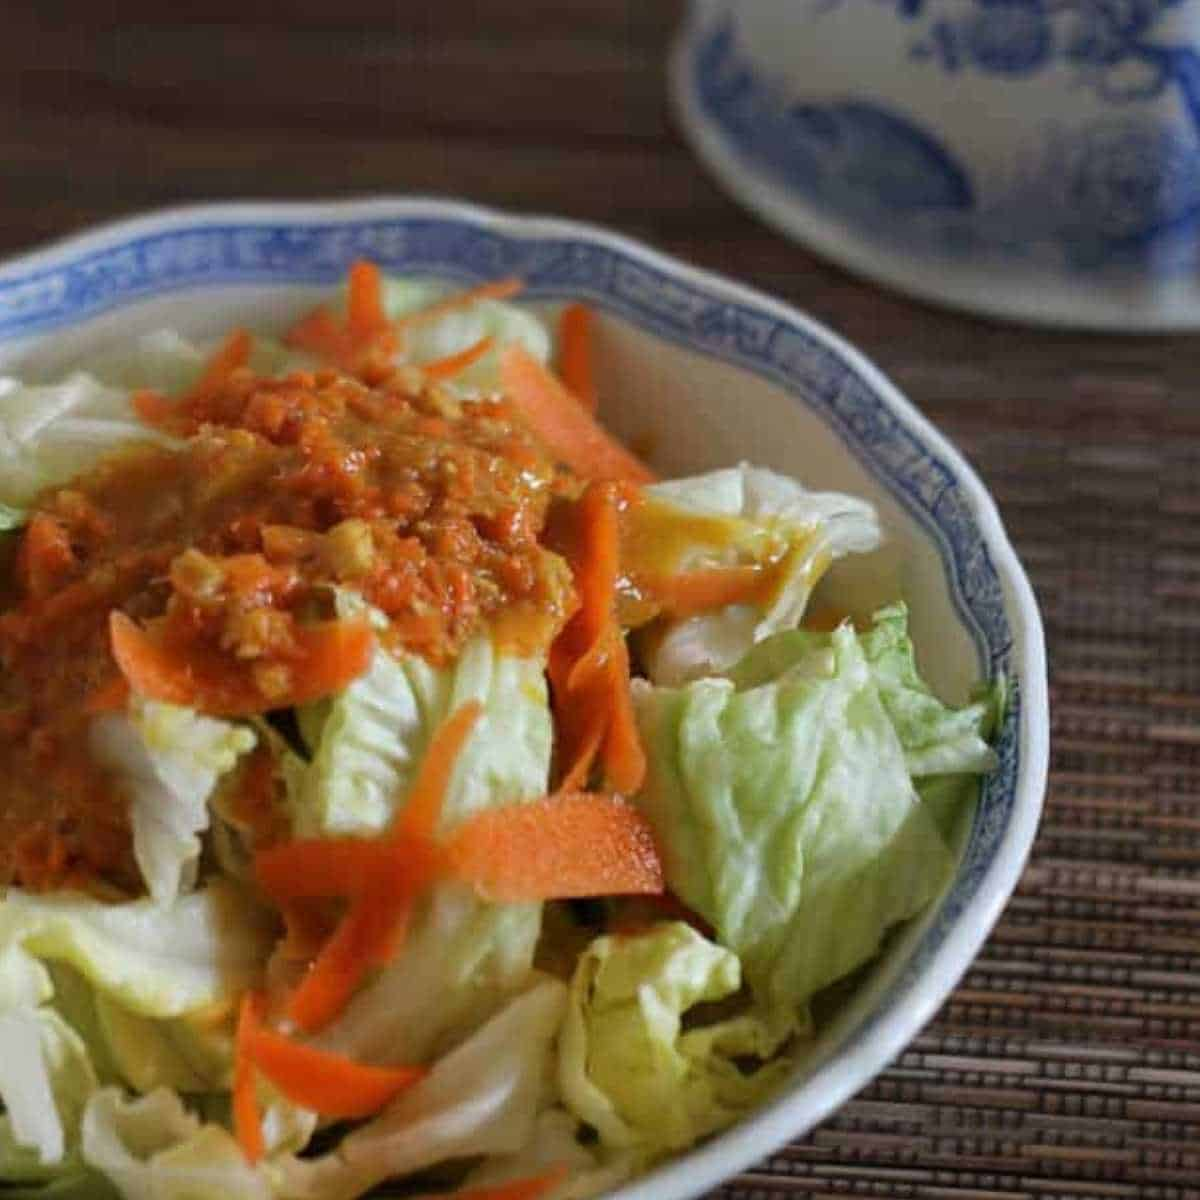 Japanese Salad Dressing With Carrots Ginger The Happier Homemaker